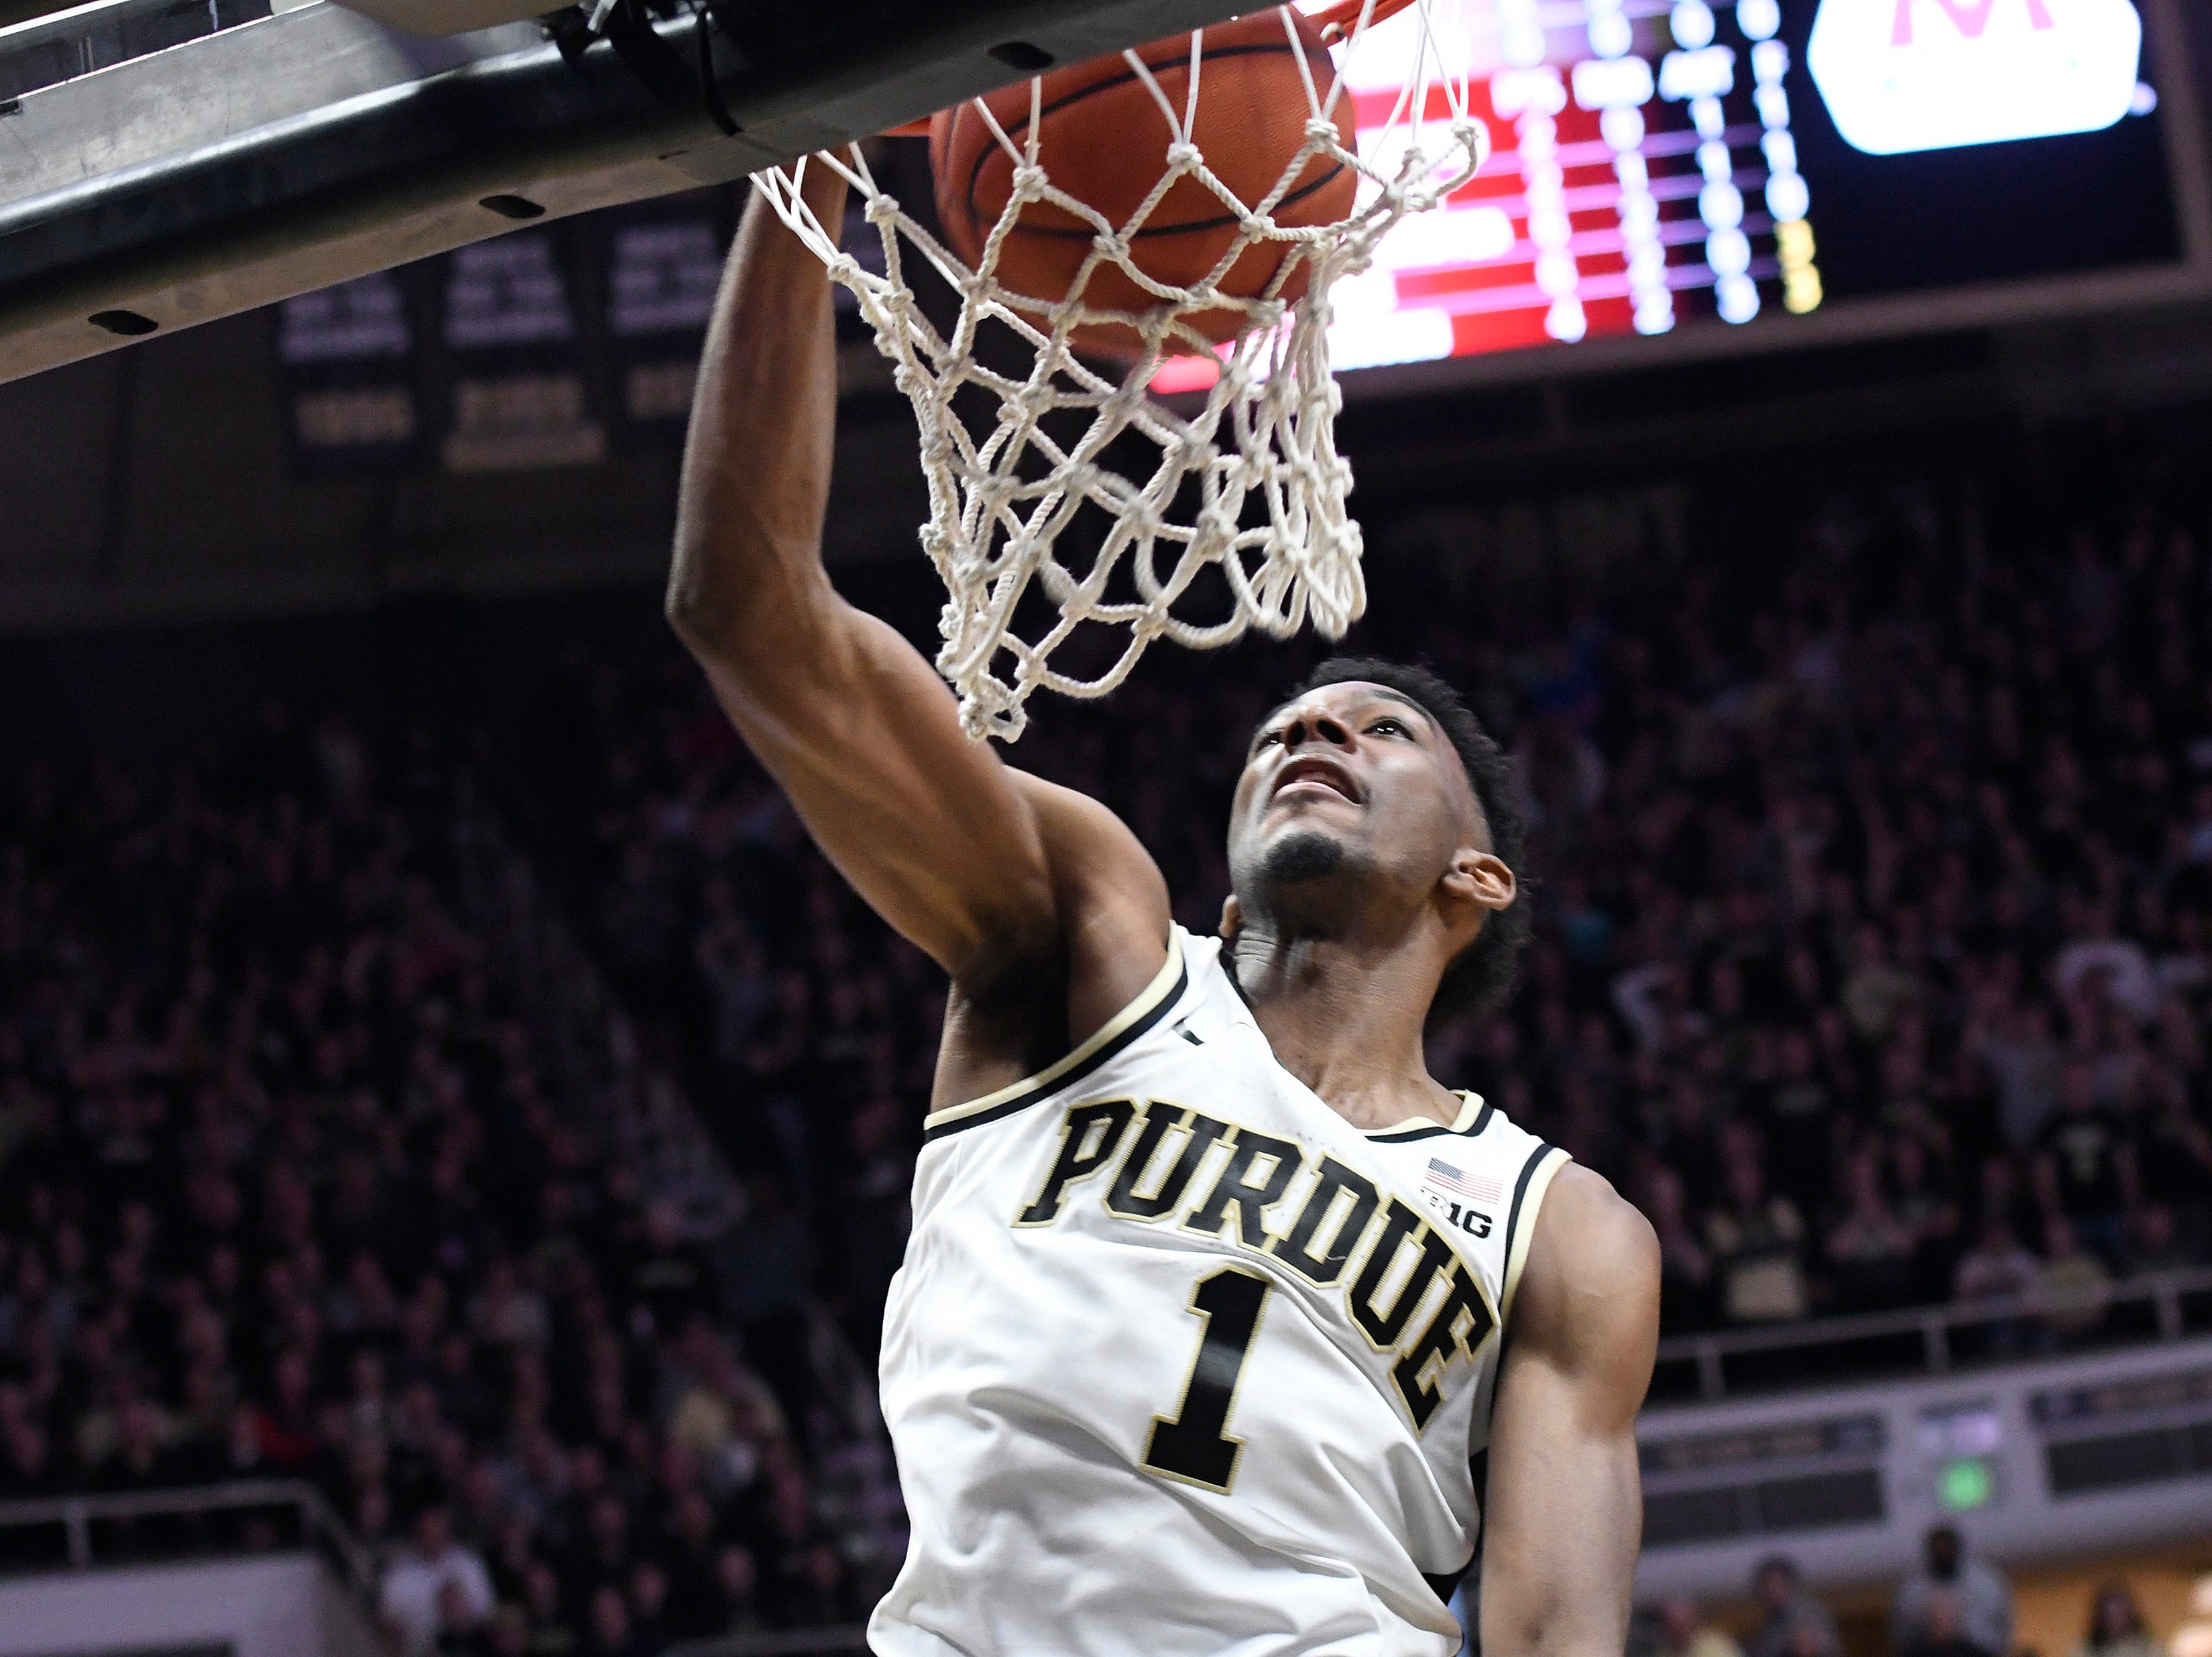 Mar 2, 2019; West Lafayette, IN, USA; Purdue Boilermakers forward Aaron Wheeler (1) dunks the ball during the 2nd half at Mackey Arena. Mandatory Credit: Sandra Dukes-USA TODAY Sports